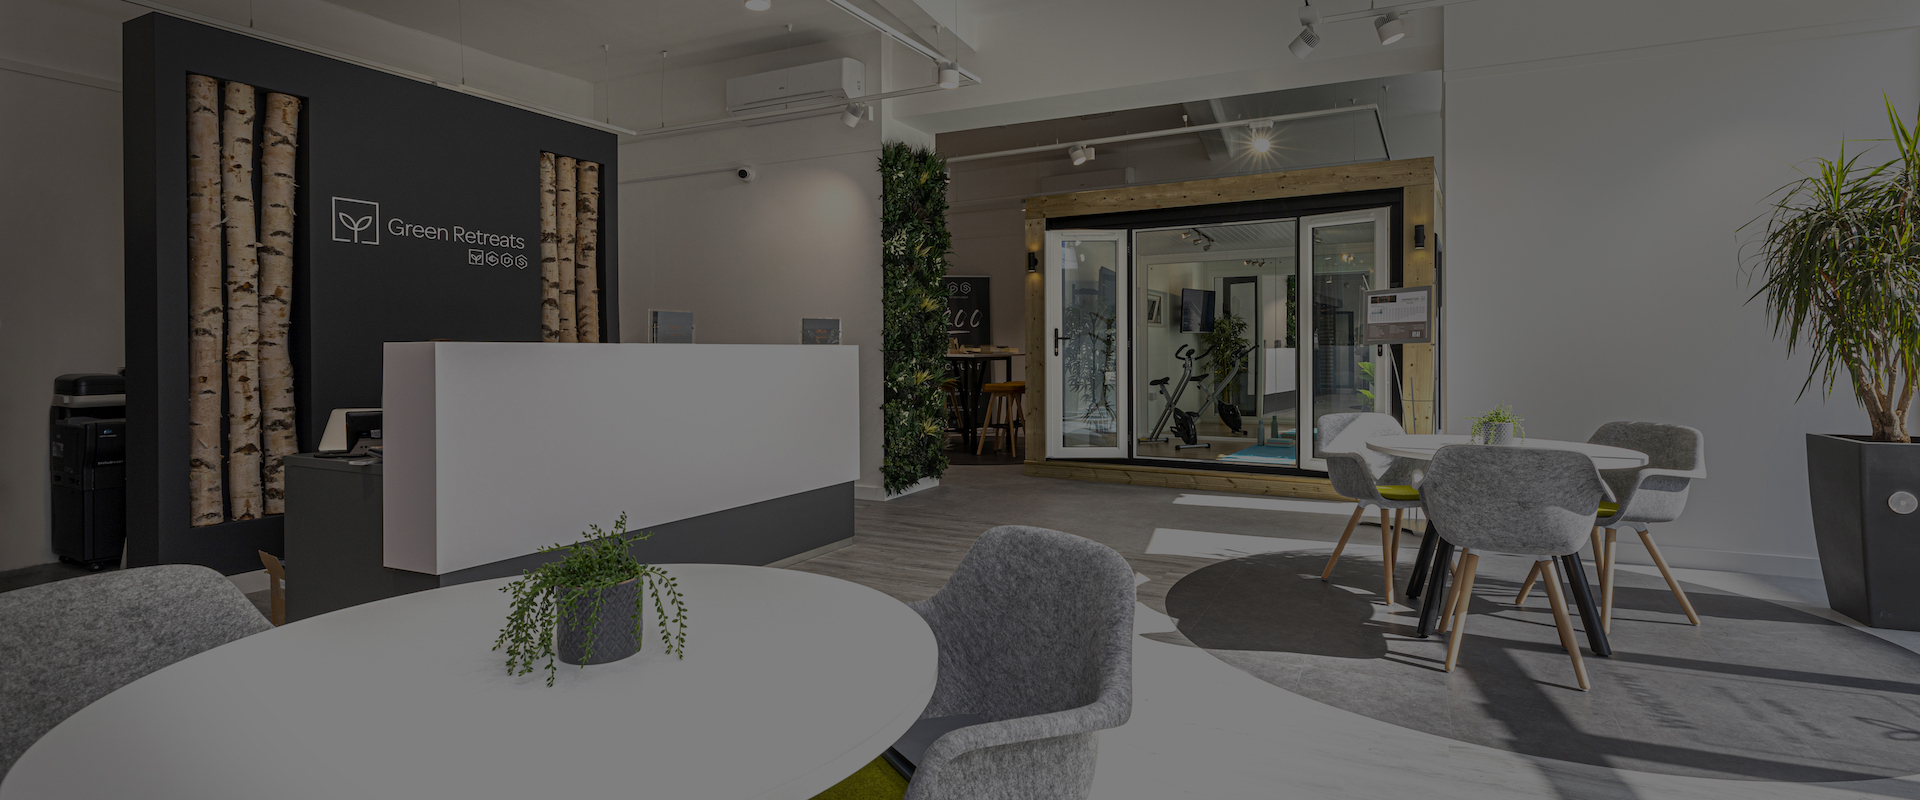 green retreats London office fit out